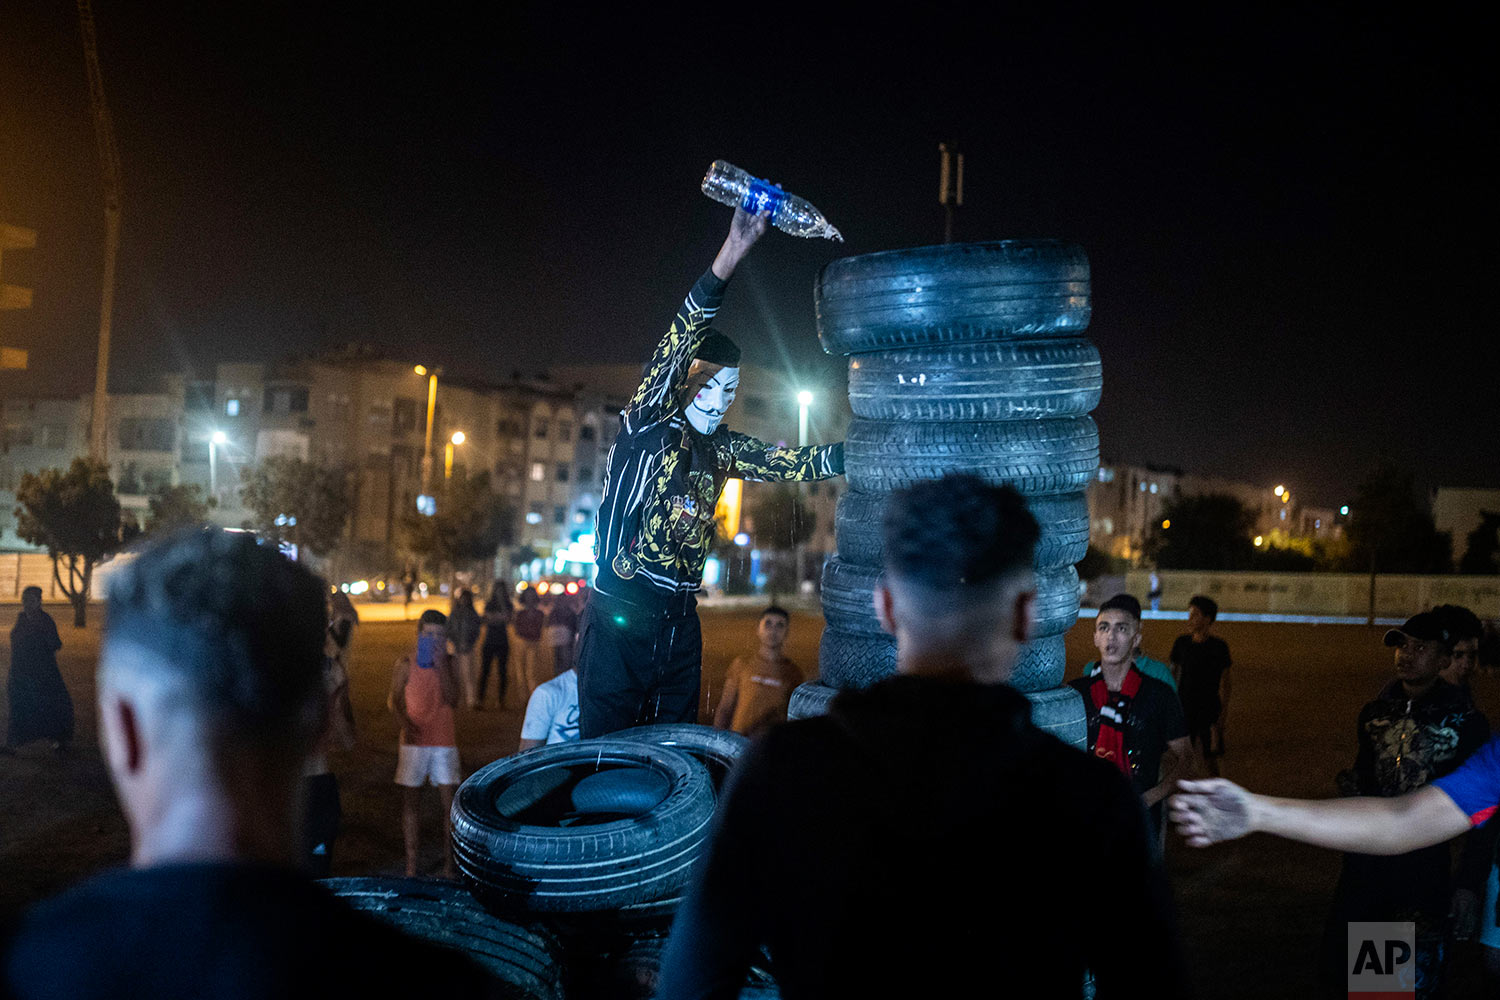 A youth pours kerosene over tires to light a bonfire in celebration of Ashura, in Sale, near Rabat, Morocco, Sept. 9, 2019. (AP Photo/Mosa'ab Elshamy)